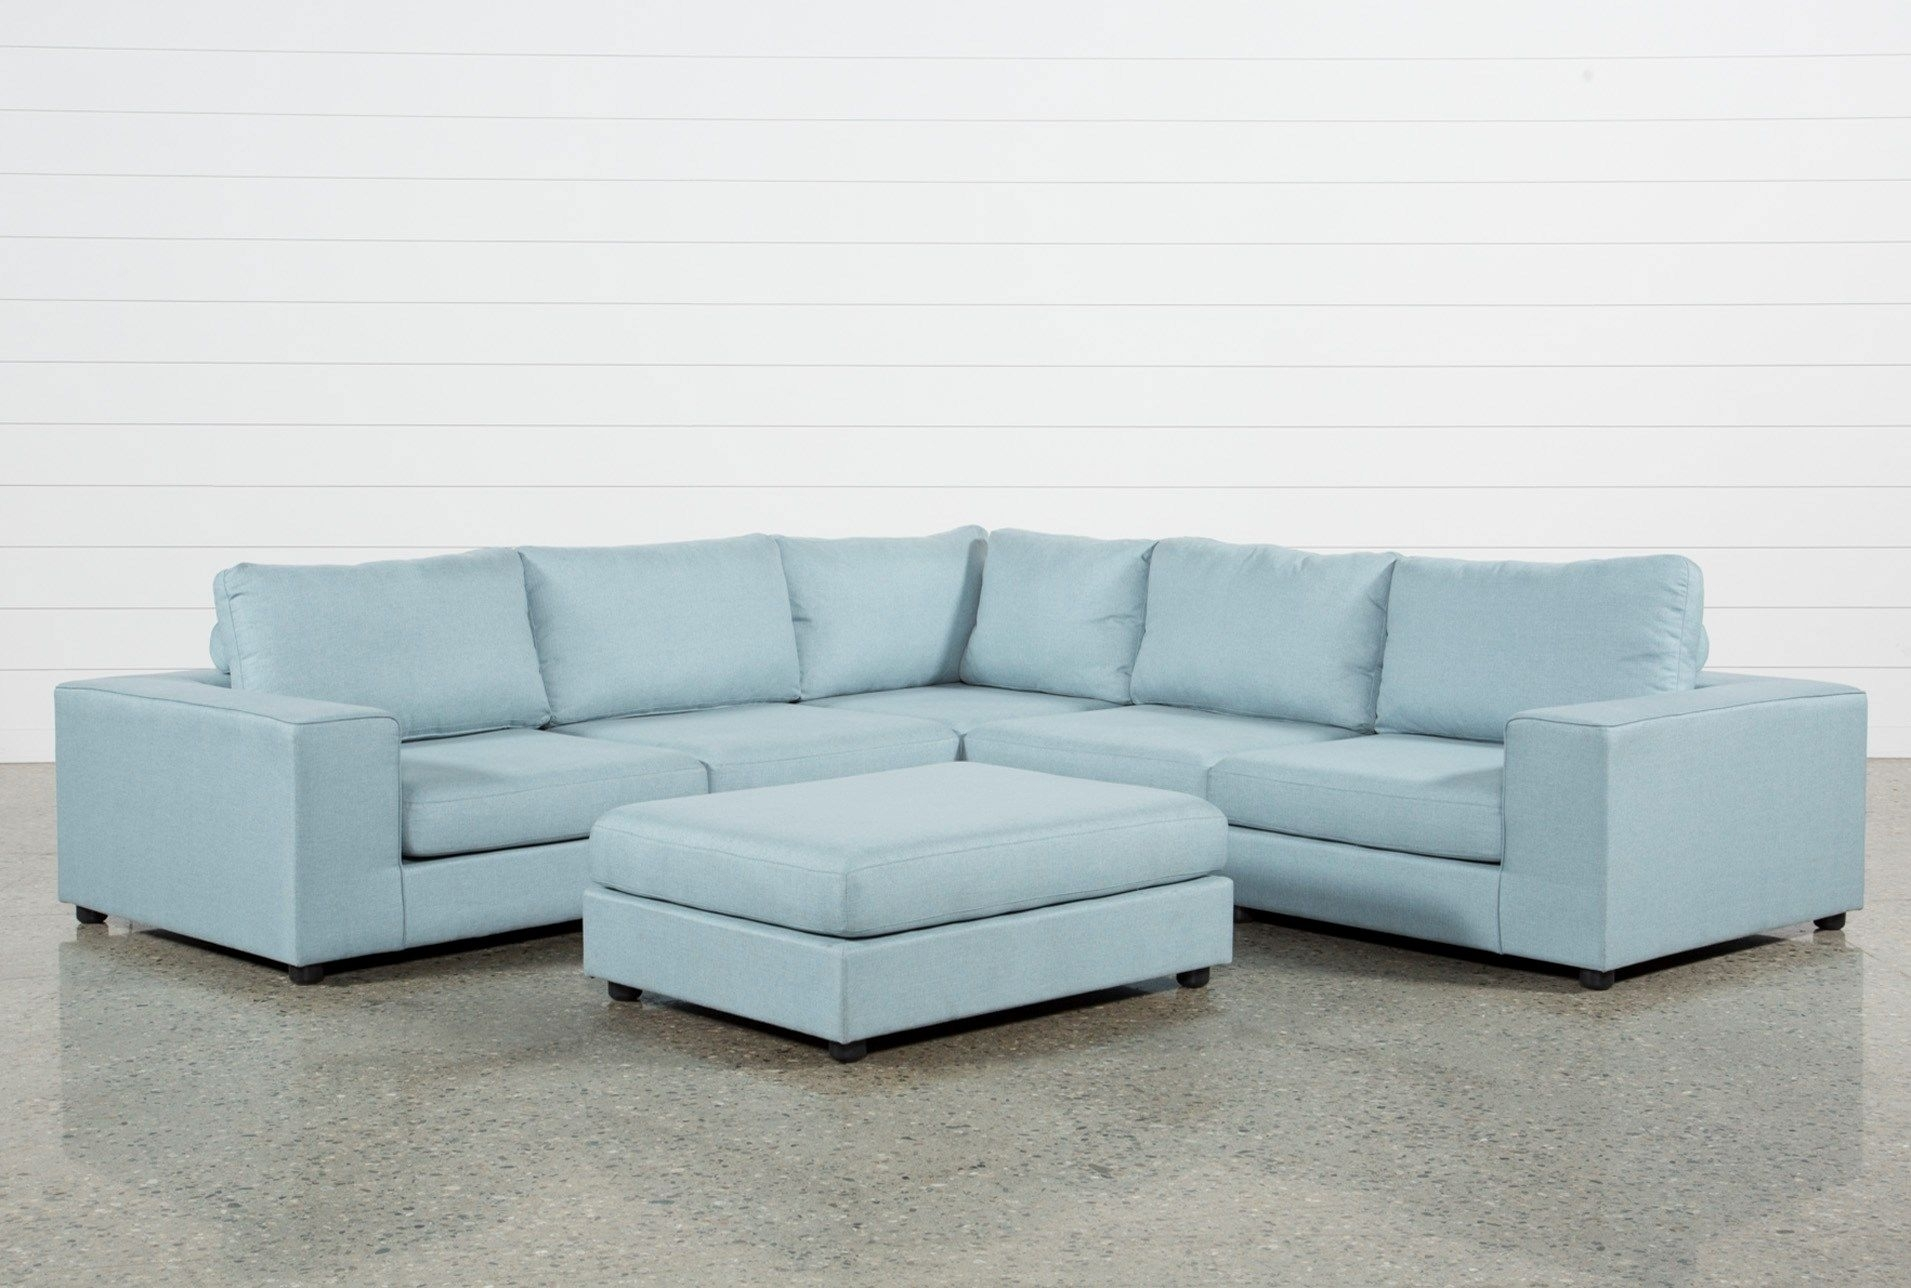 Josephine 2 Piece Sectional W/laf Sofa, Grey | Modular Design With Josephine 2 Piece Sectionals With Raf Sofa (Image 11 of 25)